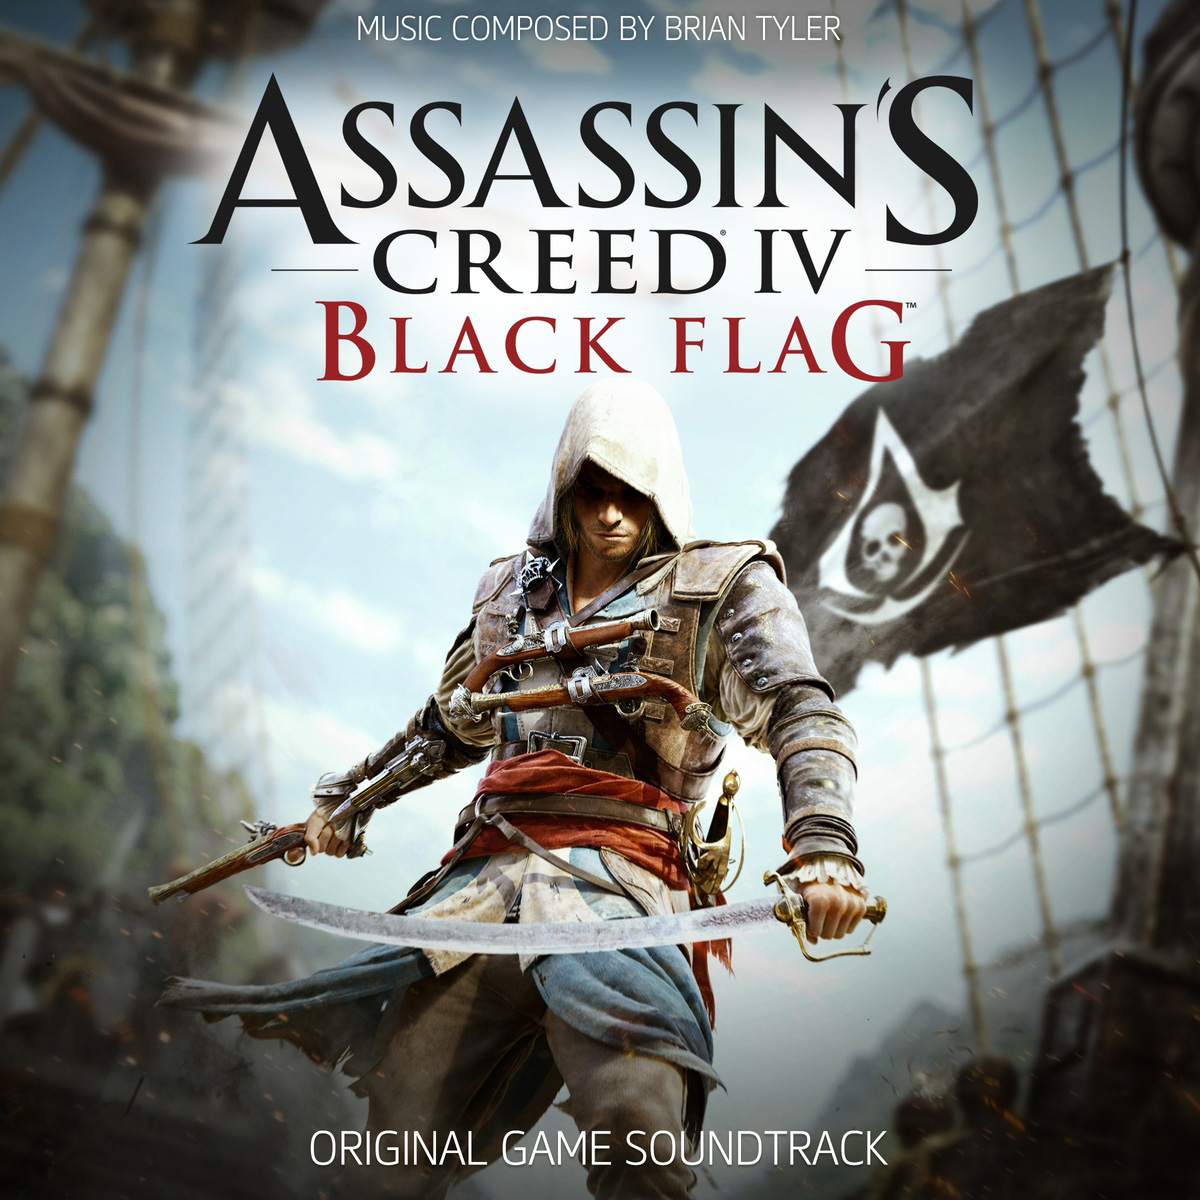 Bande originale d'Assassin's Creed IV: Black Flag